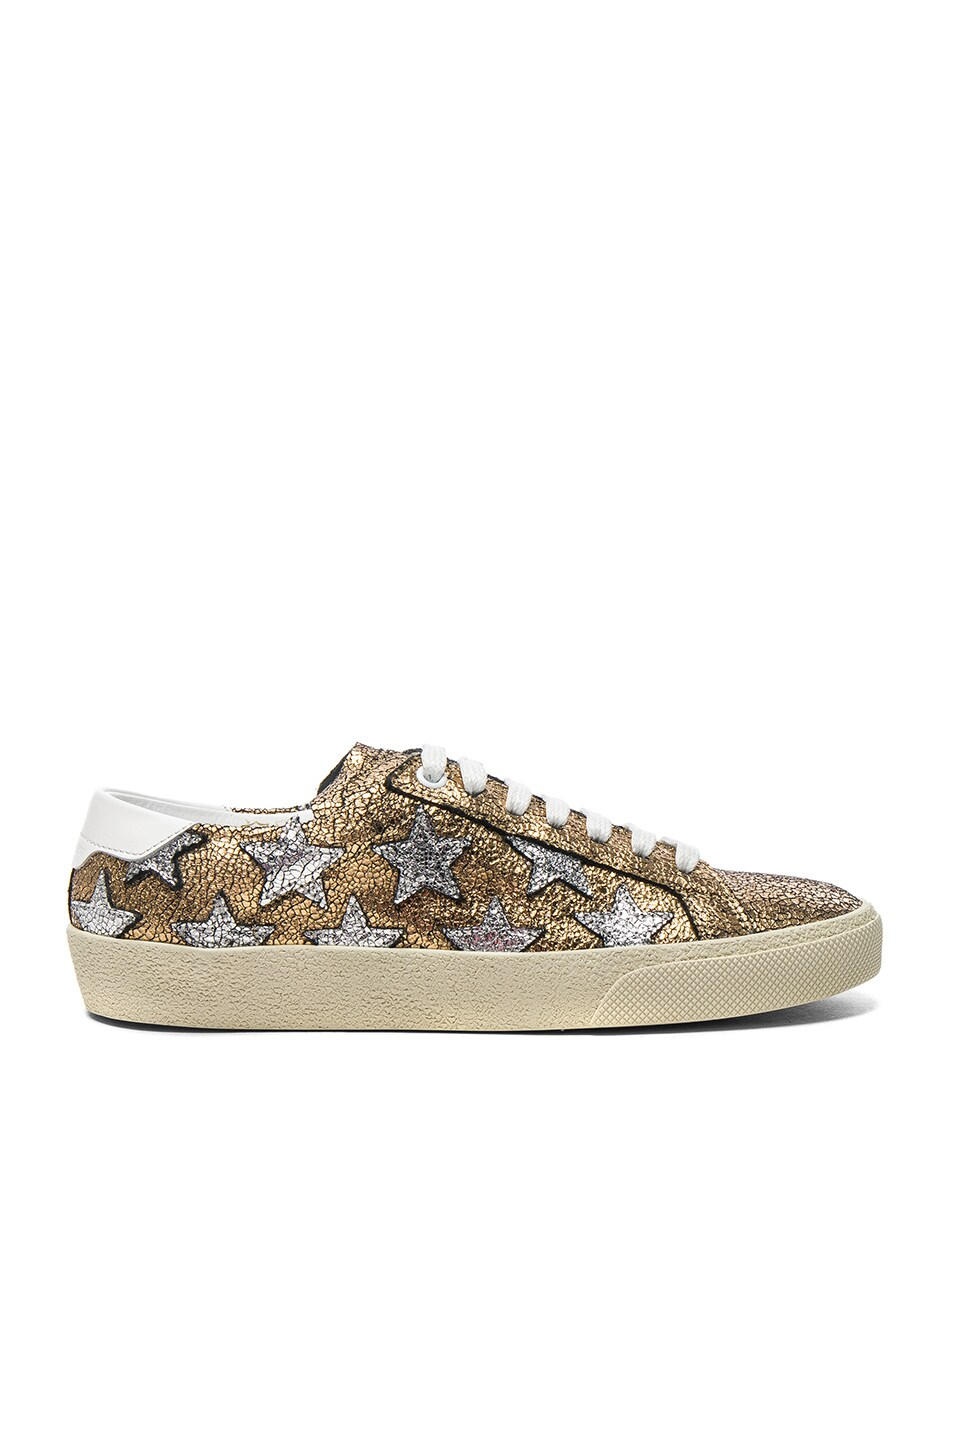 Image 1 of Saint Laurent Leather Court Classic Star Sneakers in Gold, Optic White & Silver